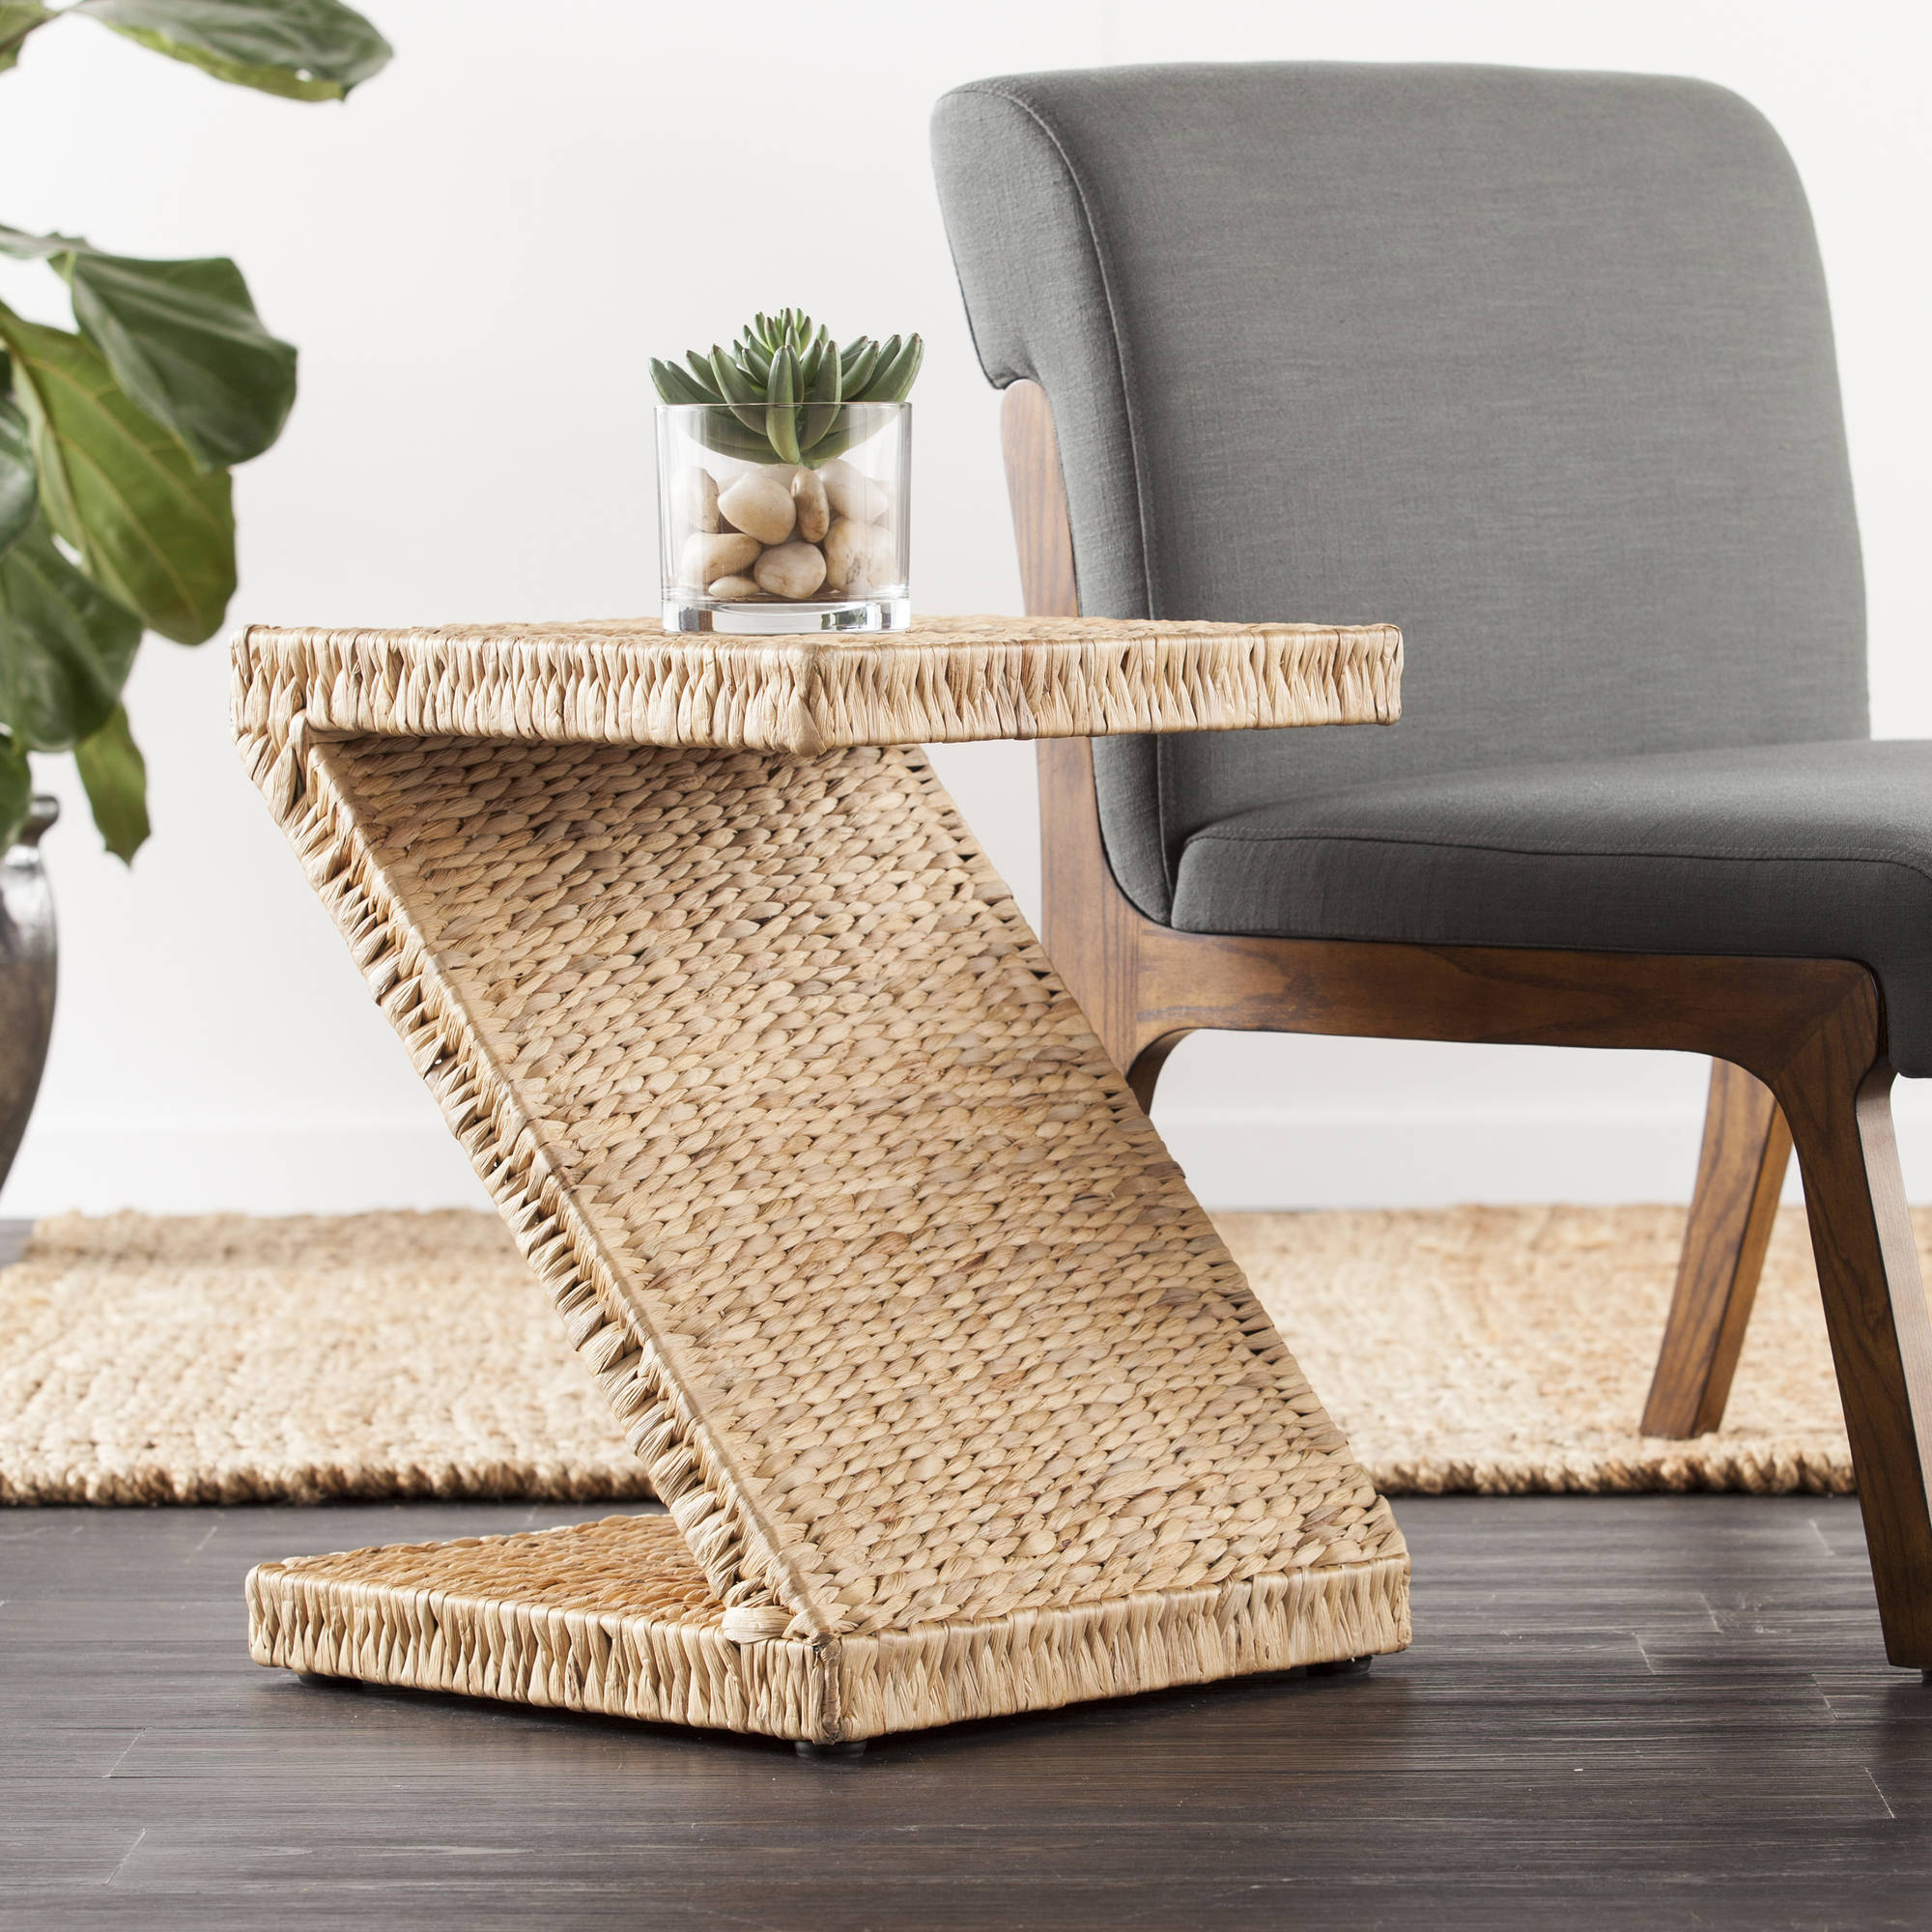 Holly and Martin Zico Water Hyacinth Accent Table, Natural Hyacinth by Southern Enterprises